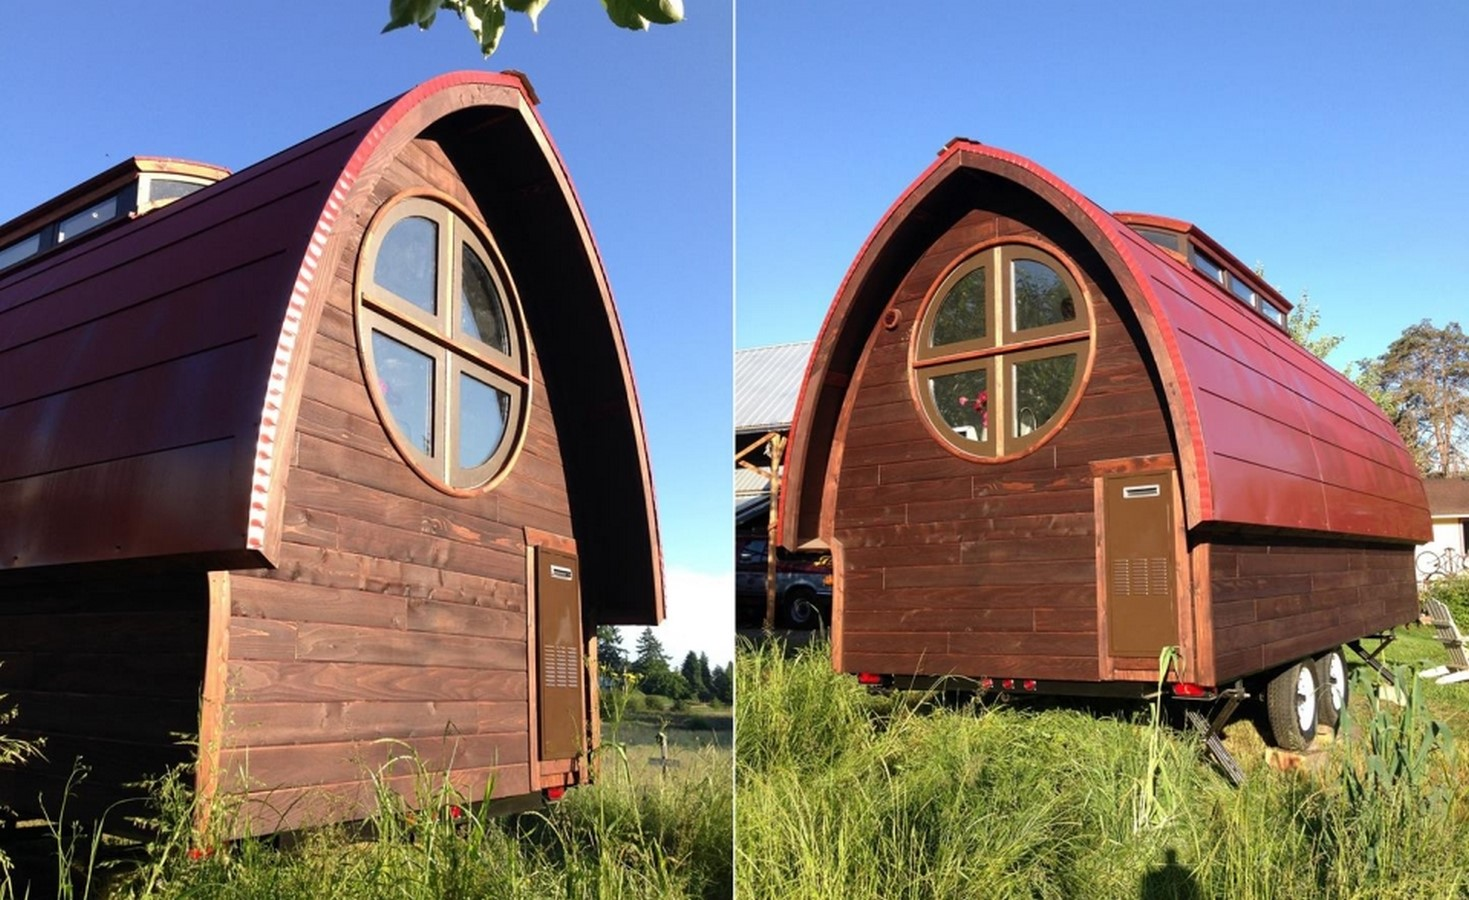 15 Examples of Tiny-home designs - Sheet40